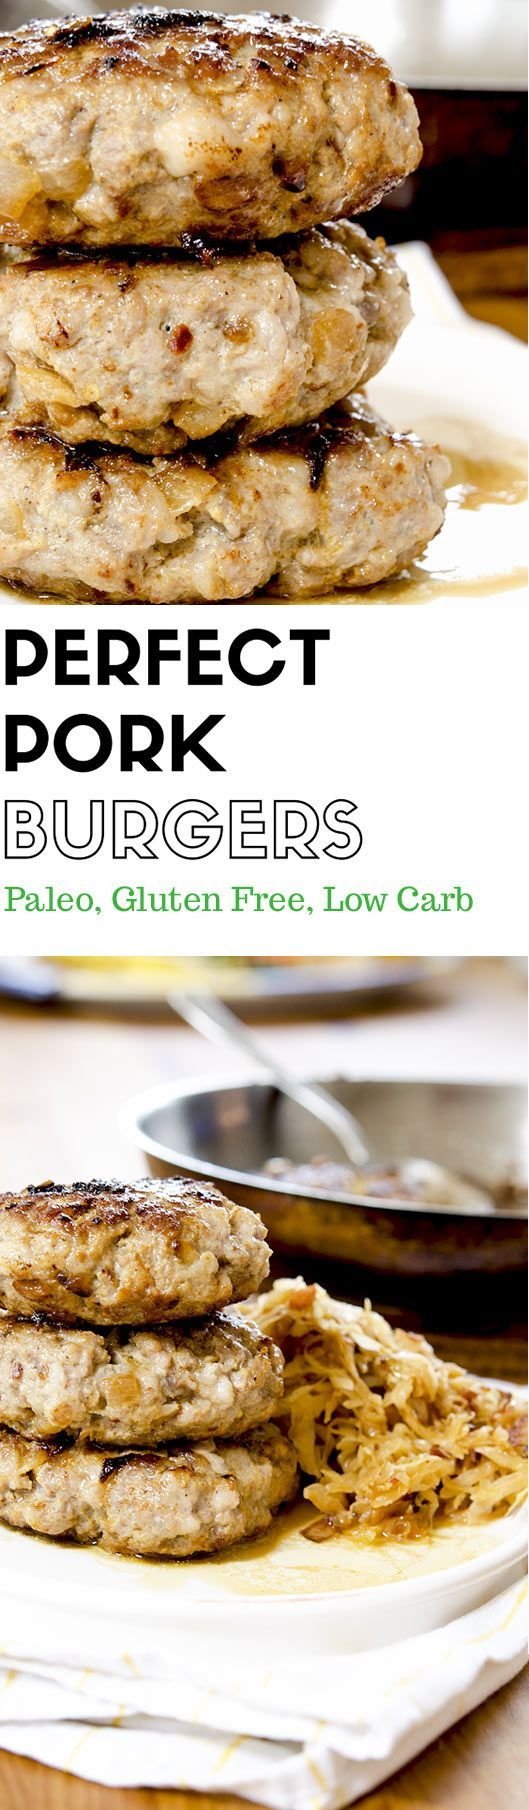 Yes. A delicious and juicy pork burgers recipe with tons of flavor and easy to follow instructions.